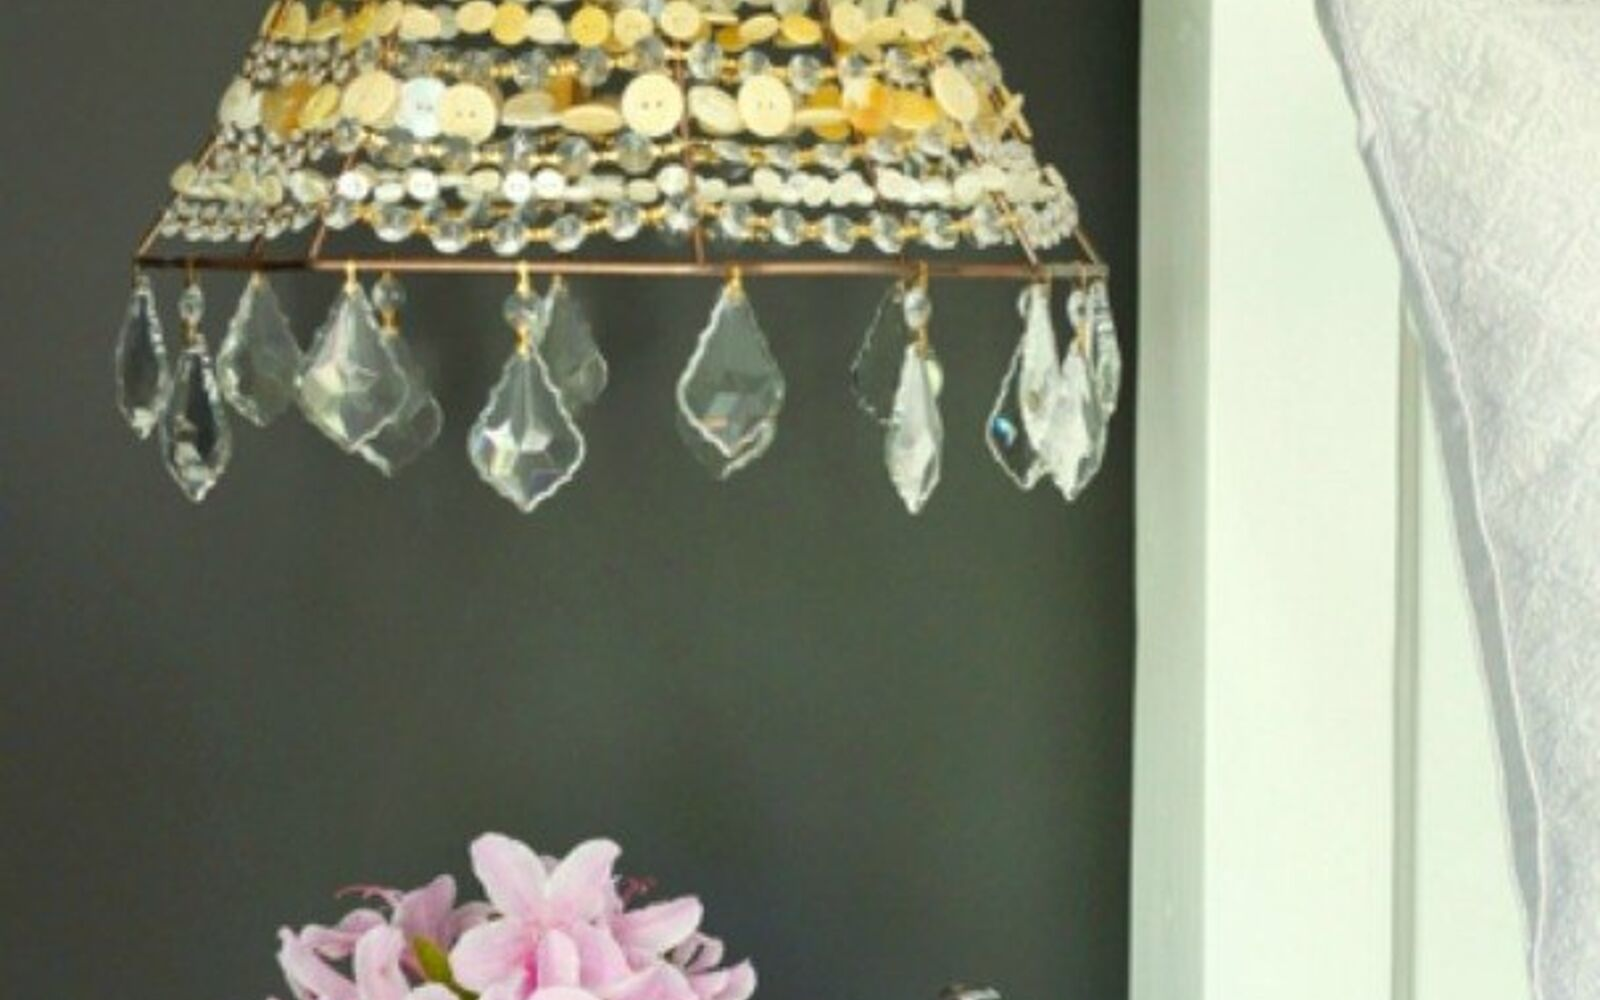 s 15 quick and easy gift ideas using buttons, String them into a beautiful lamp shade